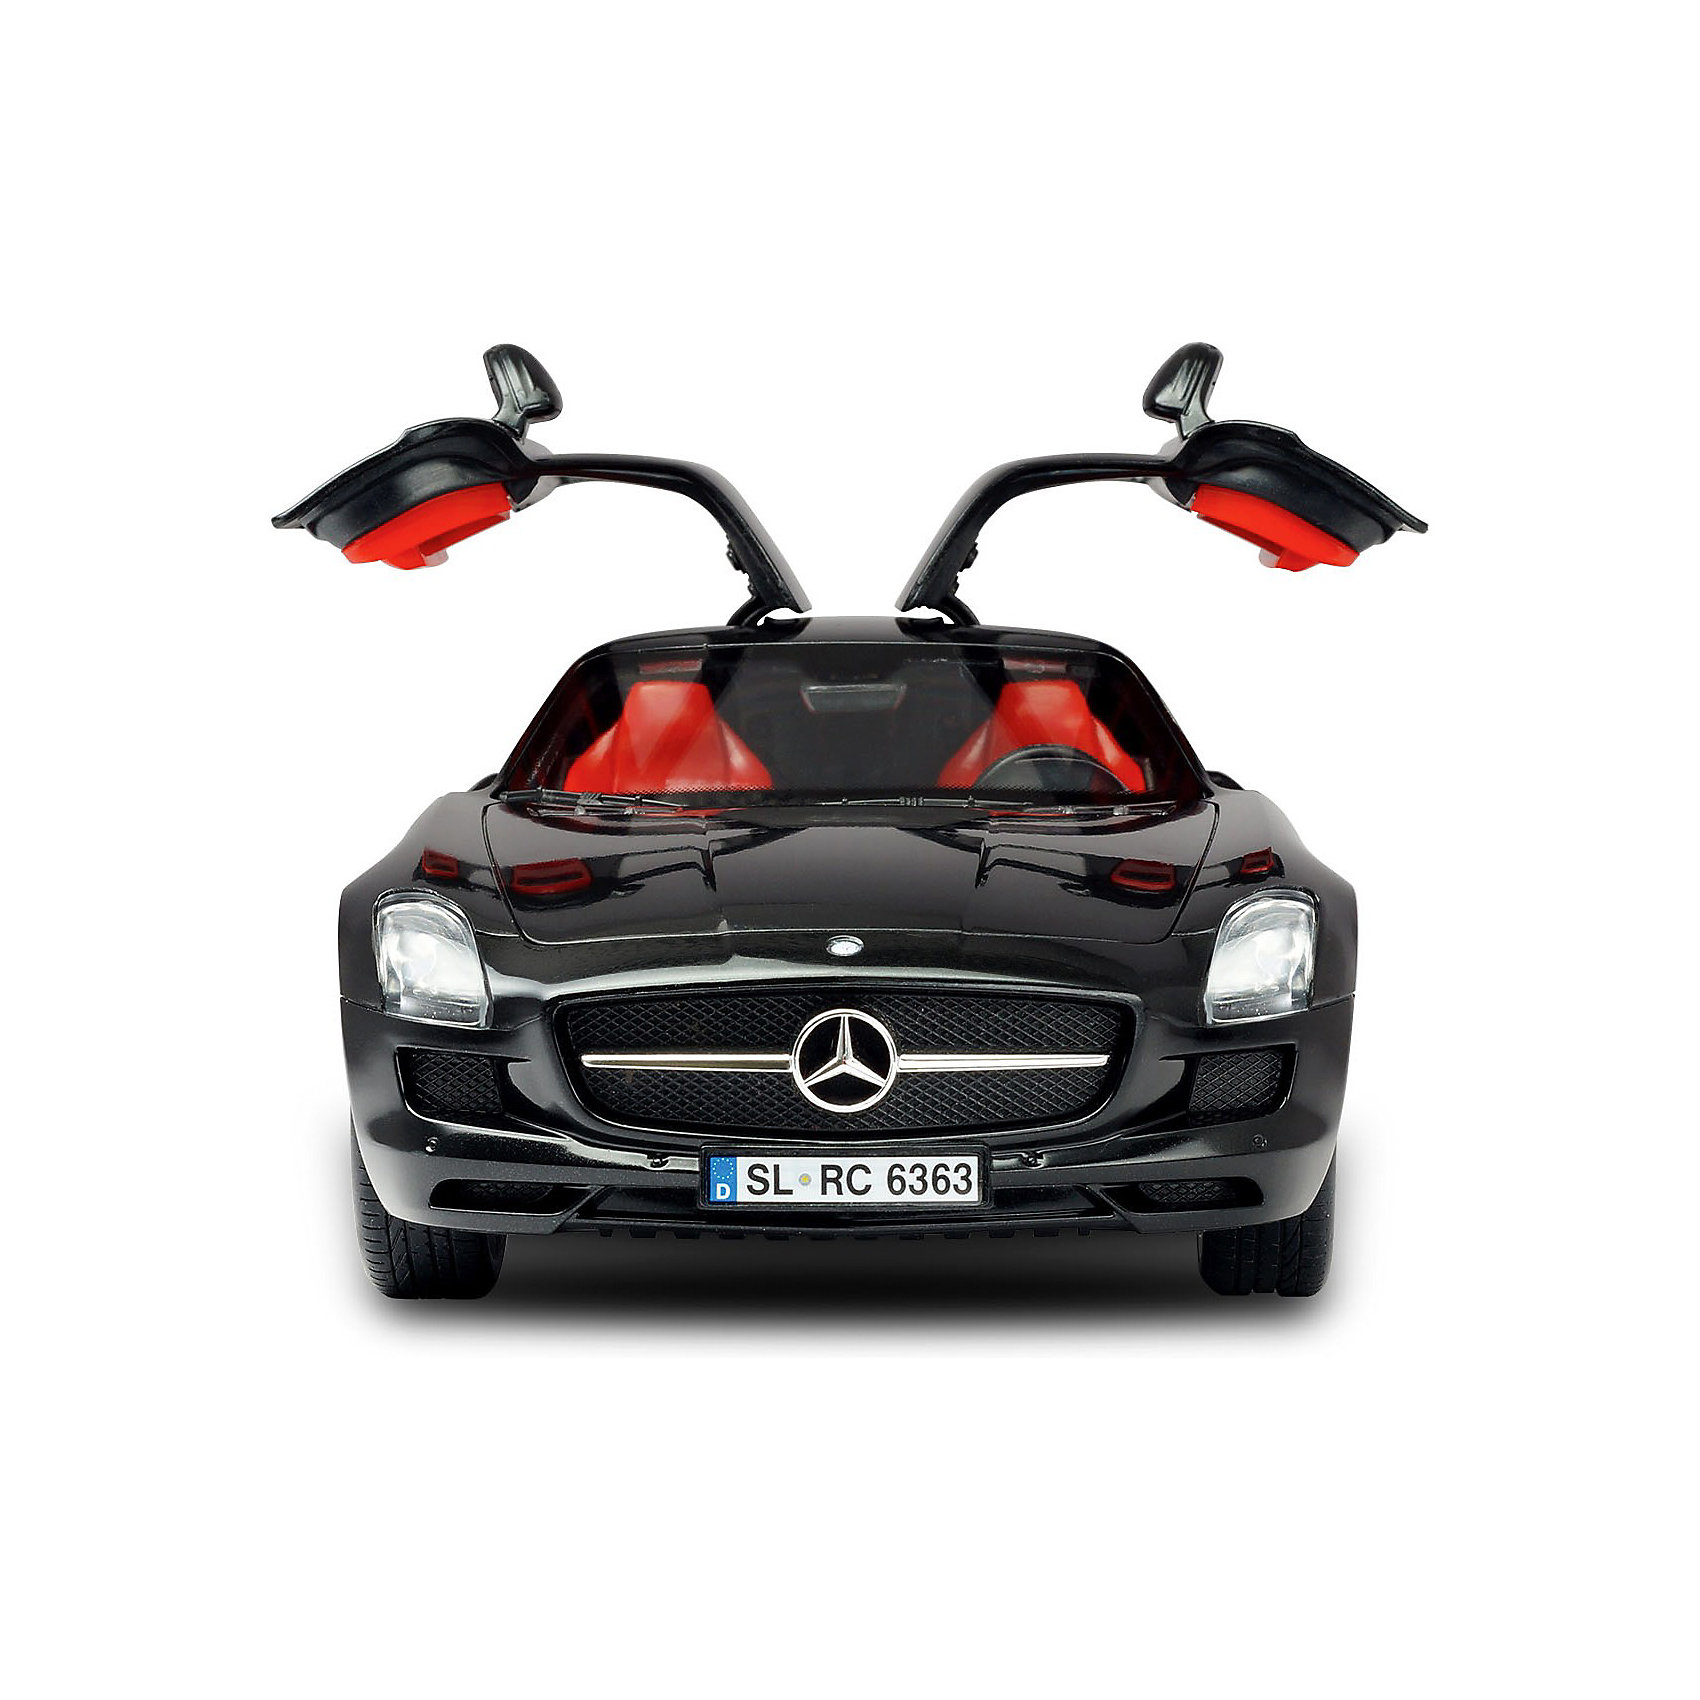 Silverlit Машина Mercedes-Benz с упр. от iPhone/iPad/iPod, Silverlit машины silverlit машина футур кросс